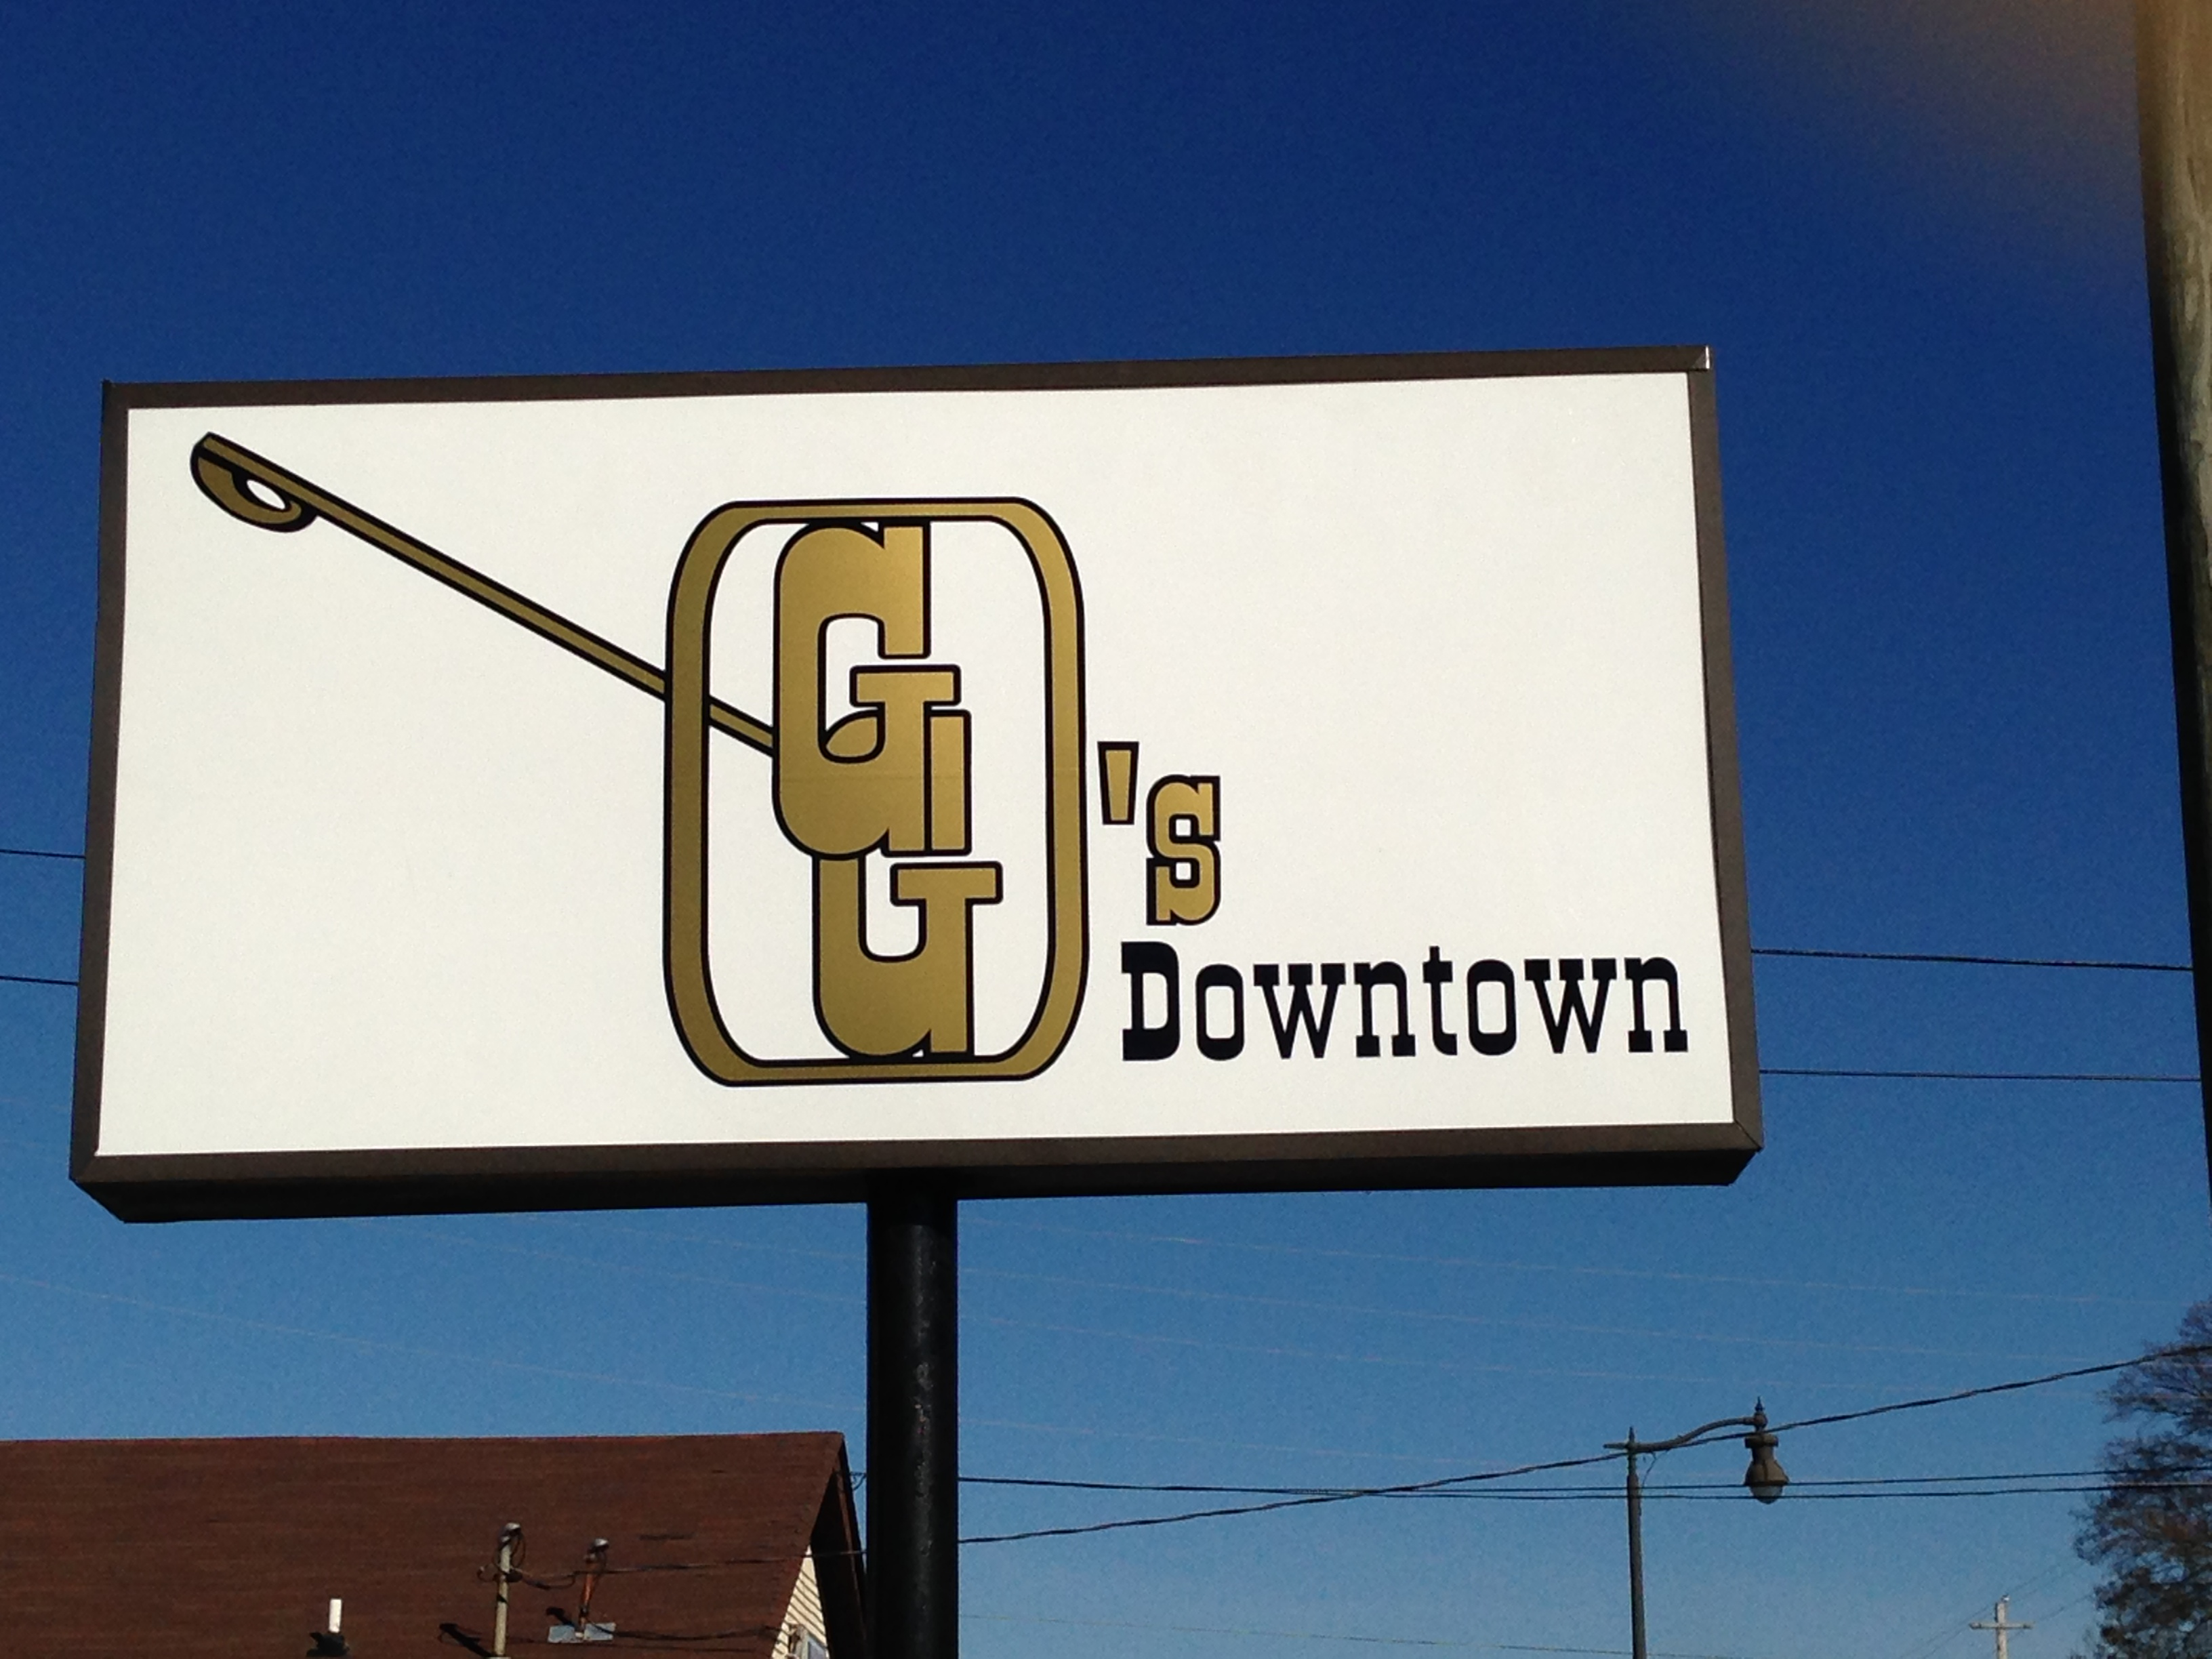 GG's Downtown